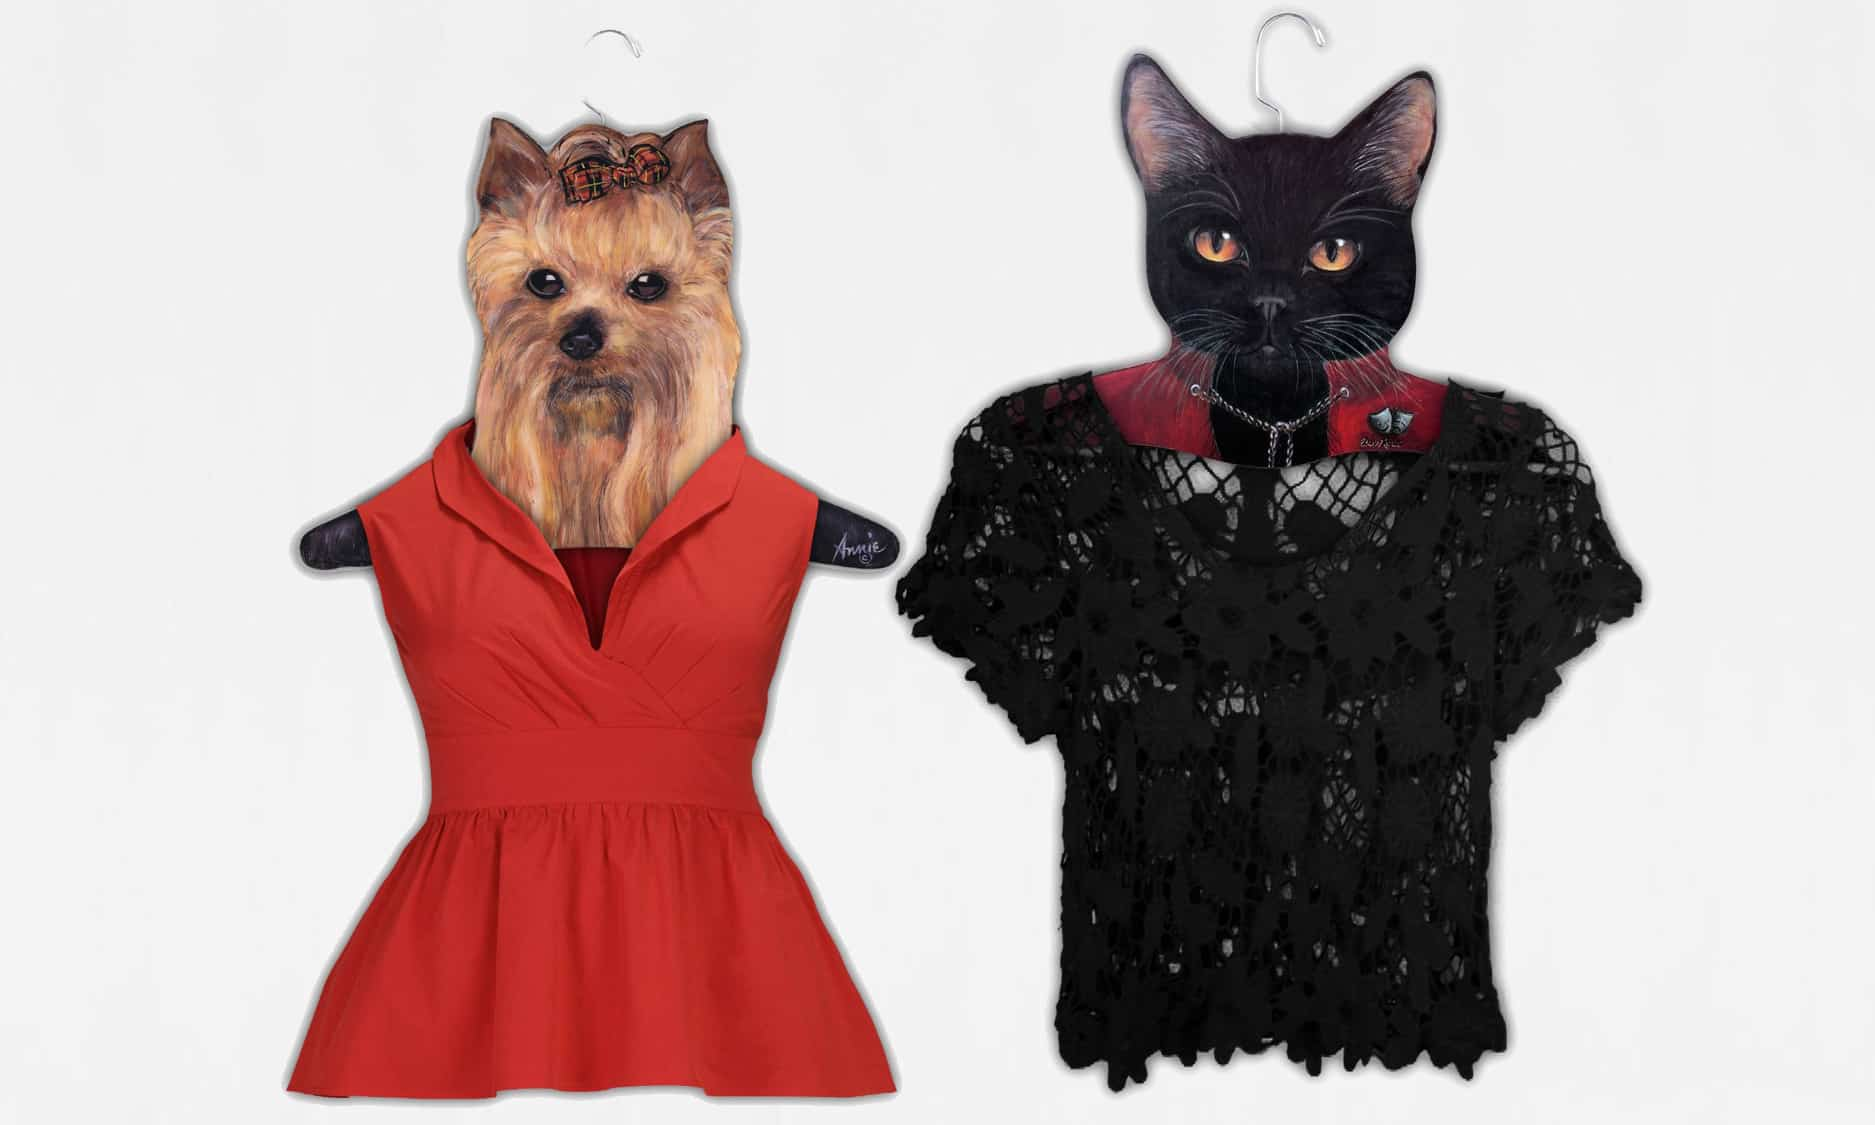 Stupell Animal Clothing Hangers When Cat and Dog Become Friends